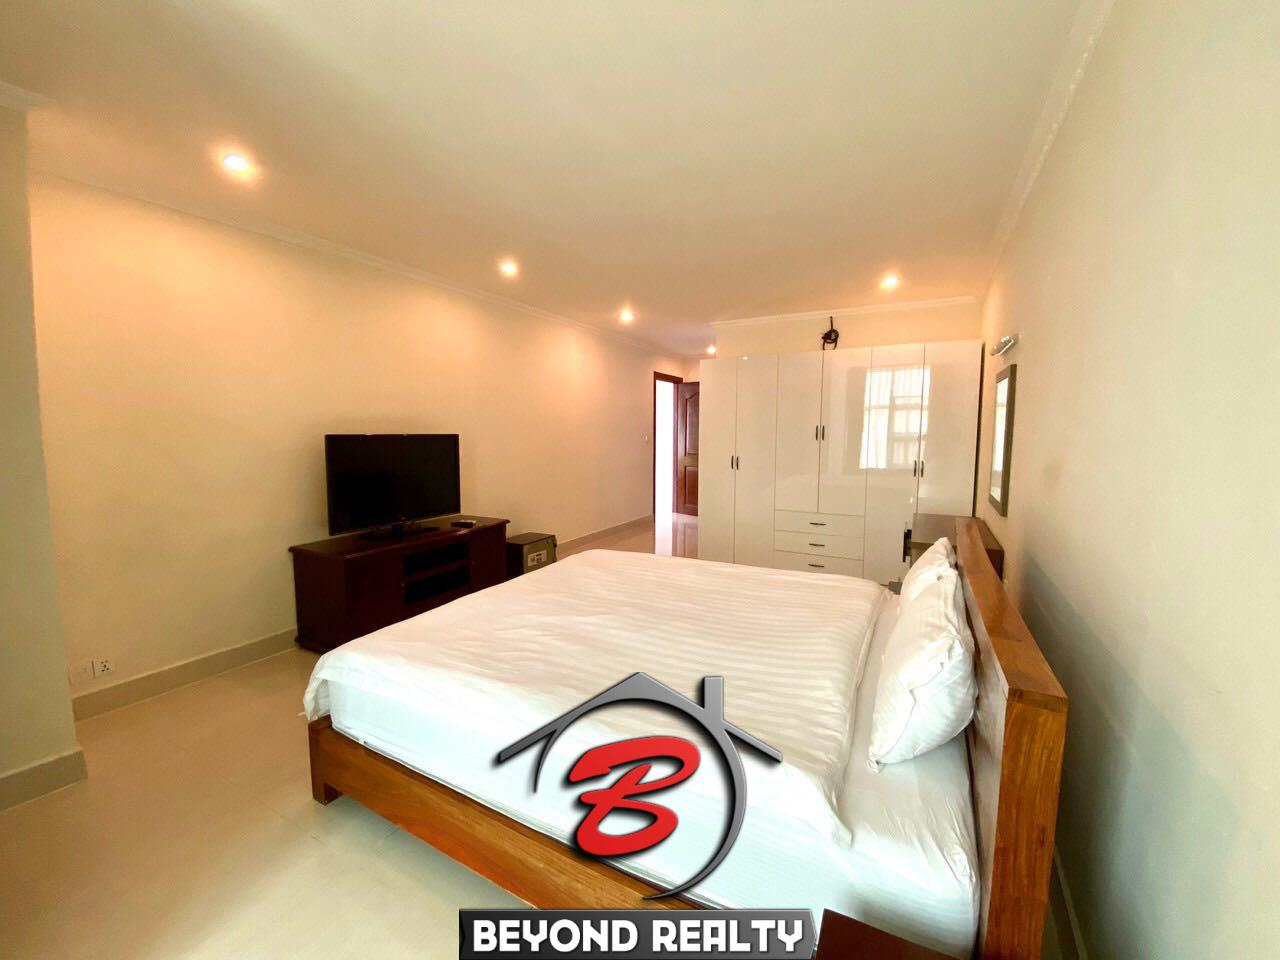 2-bedroom luxury spacious serviced apartment for rent in BKK1 in Phnom Penh in Cambodia